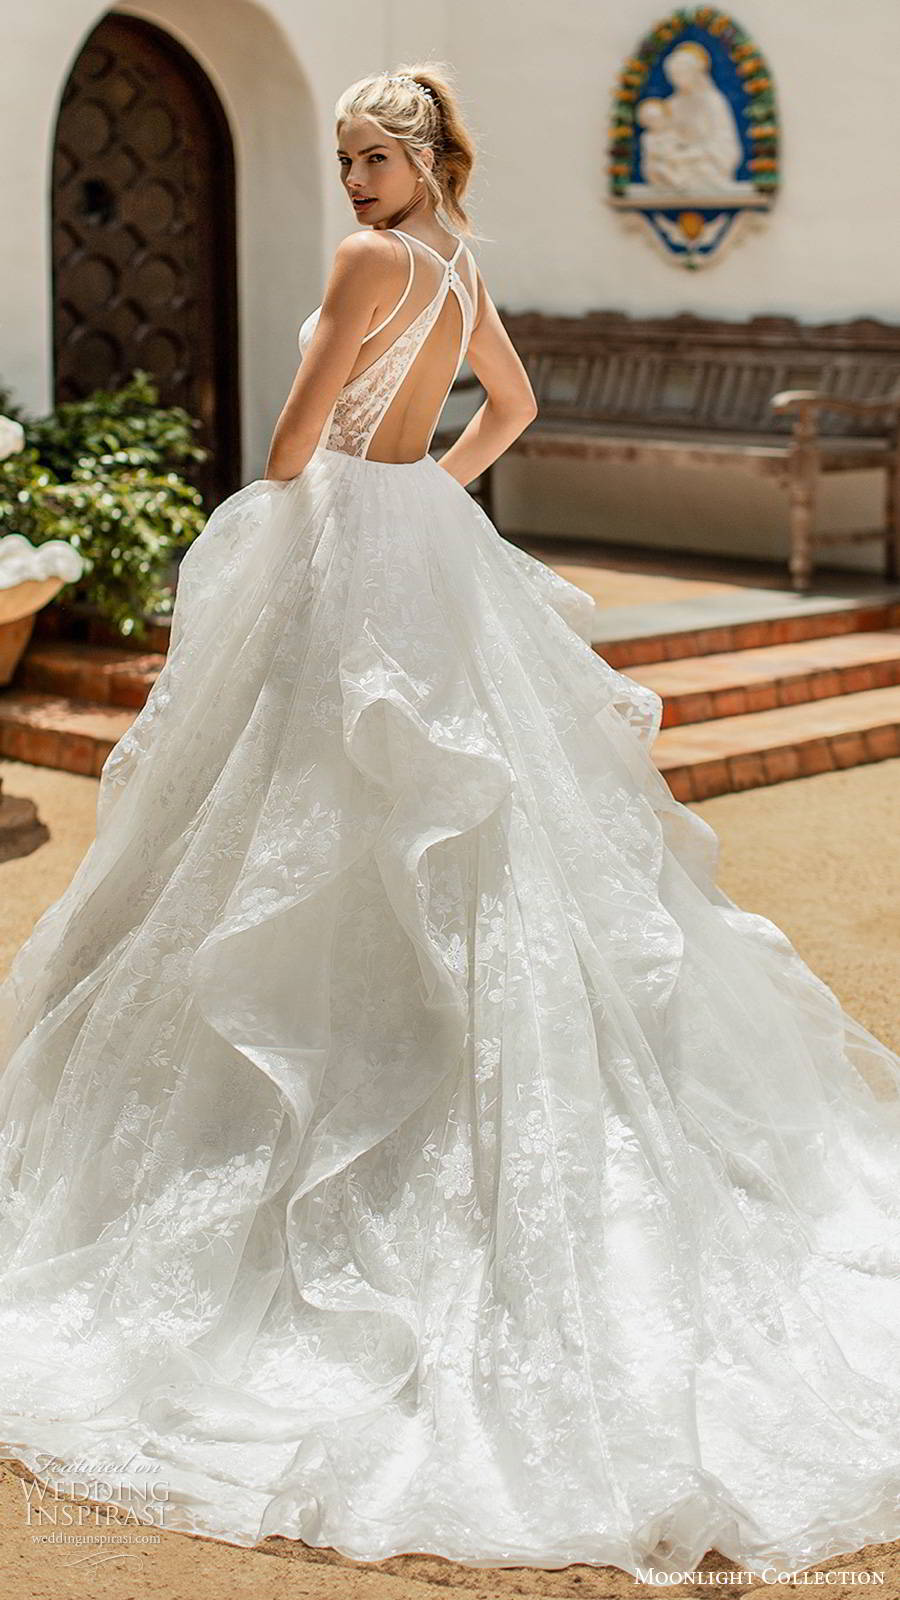 moonlight collection spring 2020 bridal sleeveless thin straps sweetheart neckline tiered skirt fully embellished romantic lace a line ball gown wedding dress cutout back chapel train (7) bv